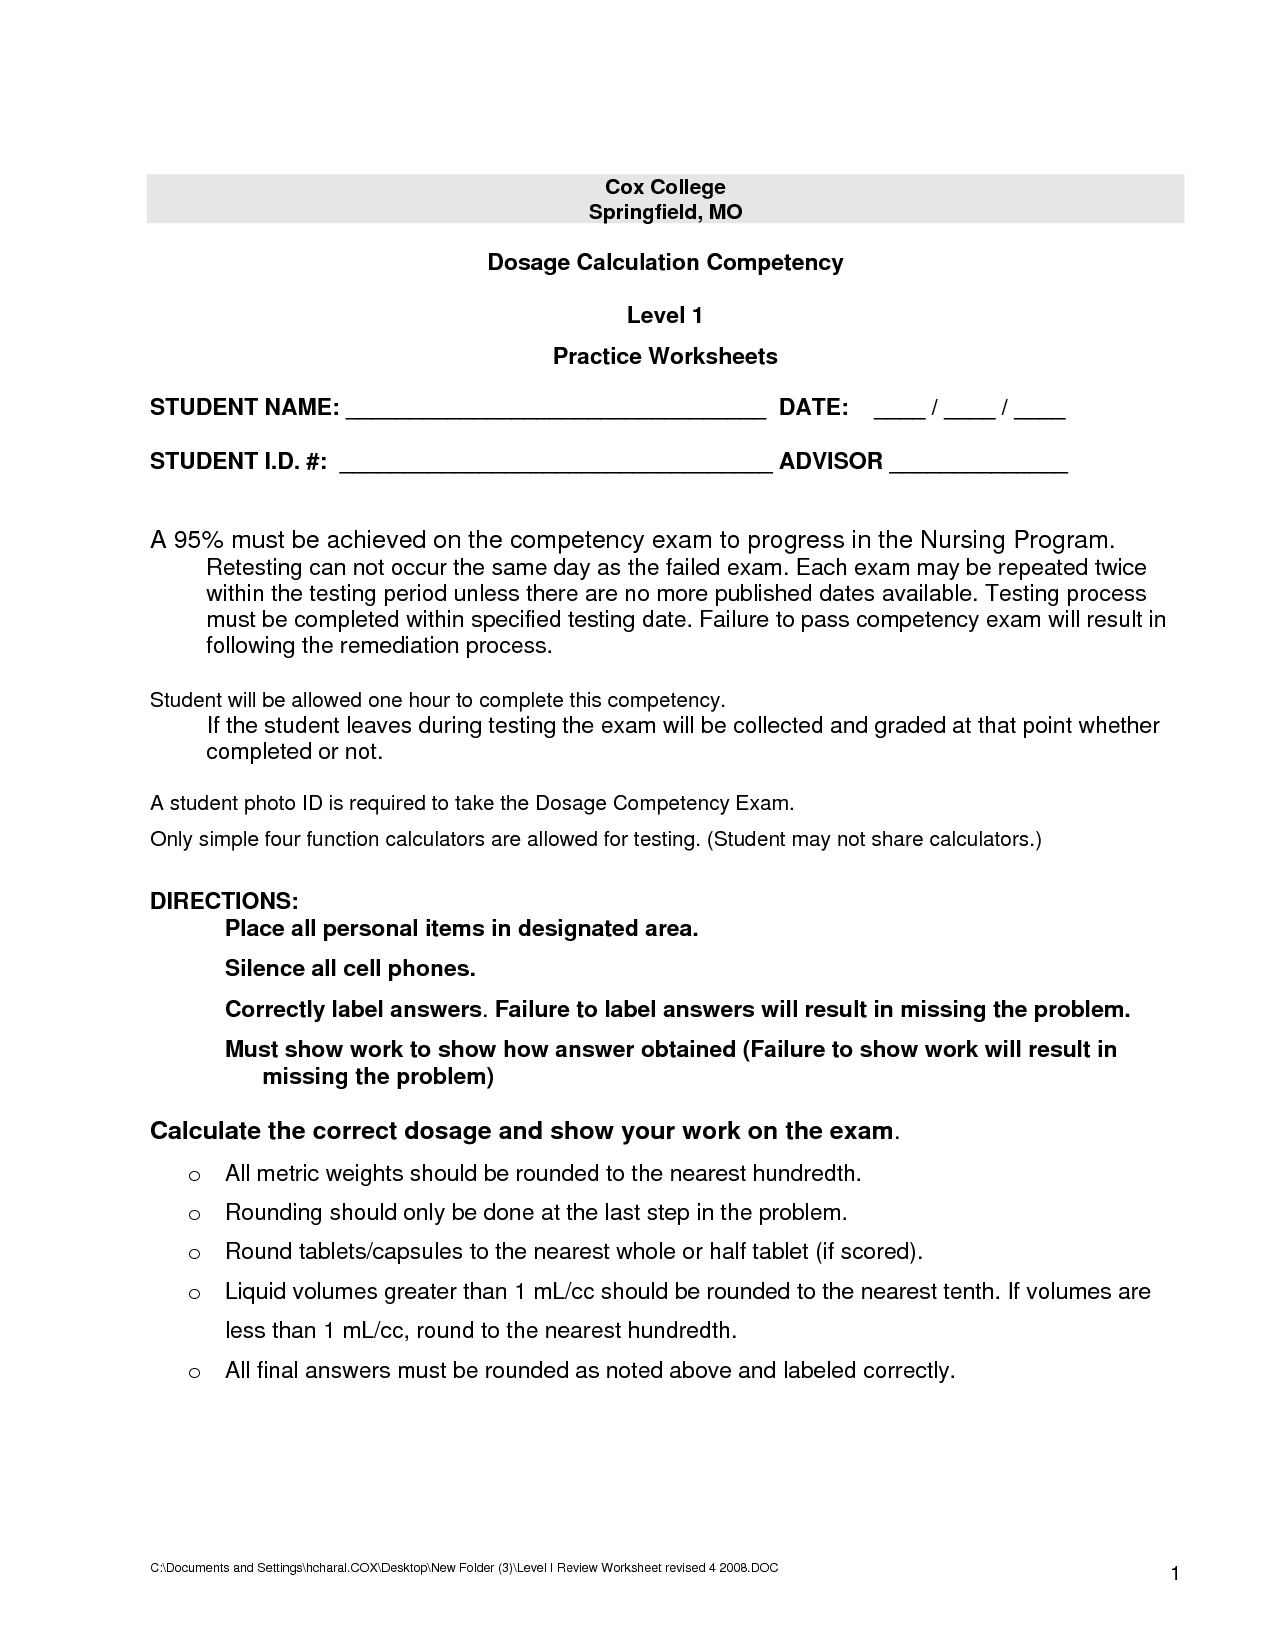 14 Best Images Of Worksheets For Nursing Class